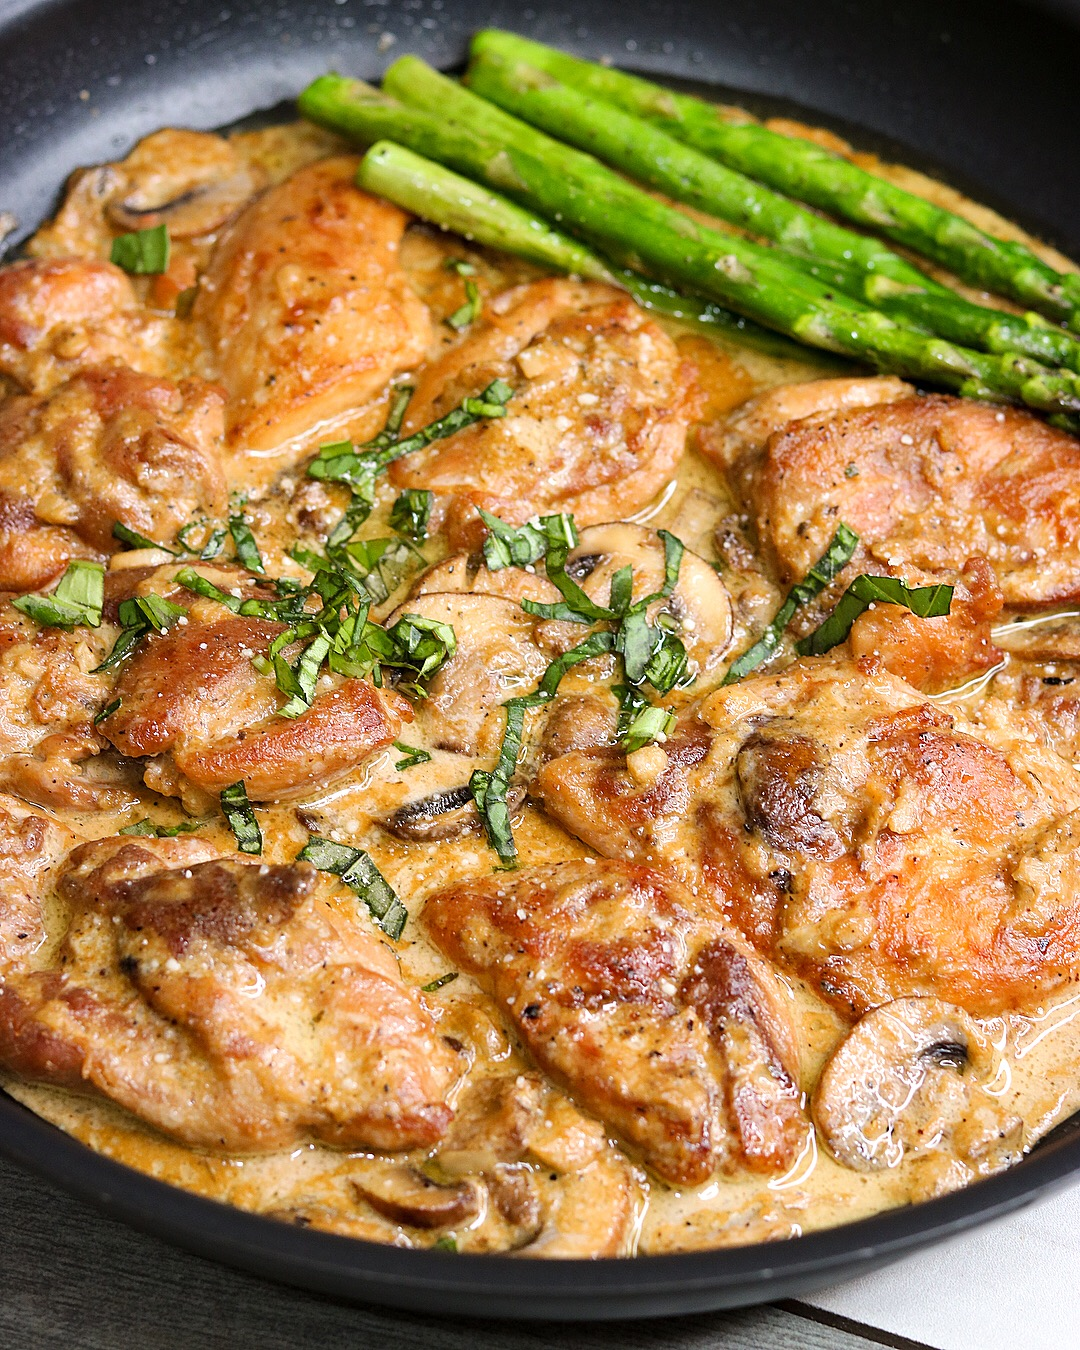 Keto / Low Carb Creamy Garlic Mushroom Chicken Recipe | www.ketofy.me | Keto Recipes | Keto Resources | Eating out on Keto | How to Start Keto Guide